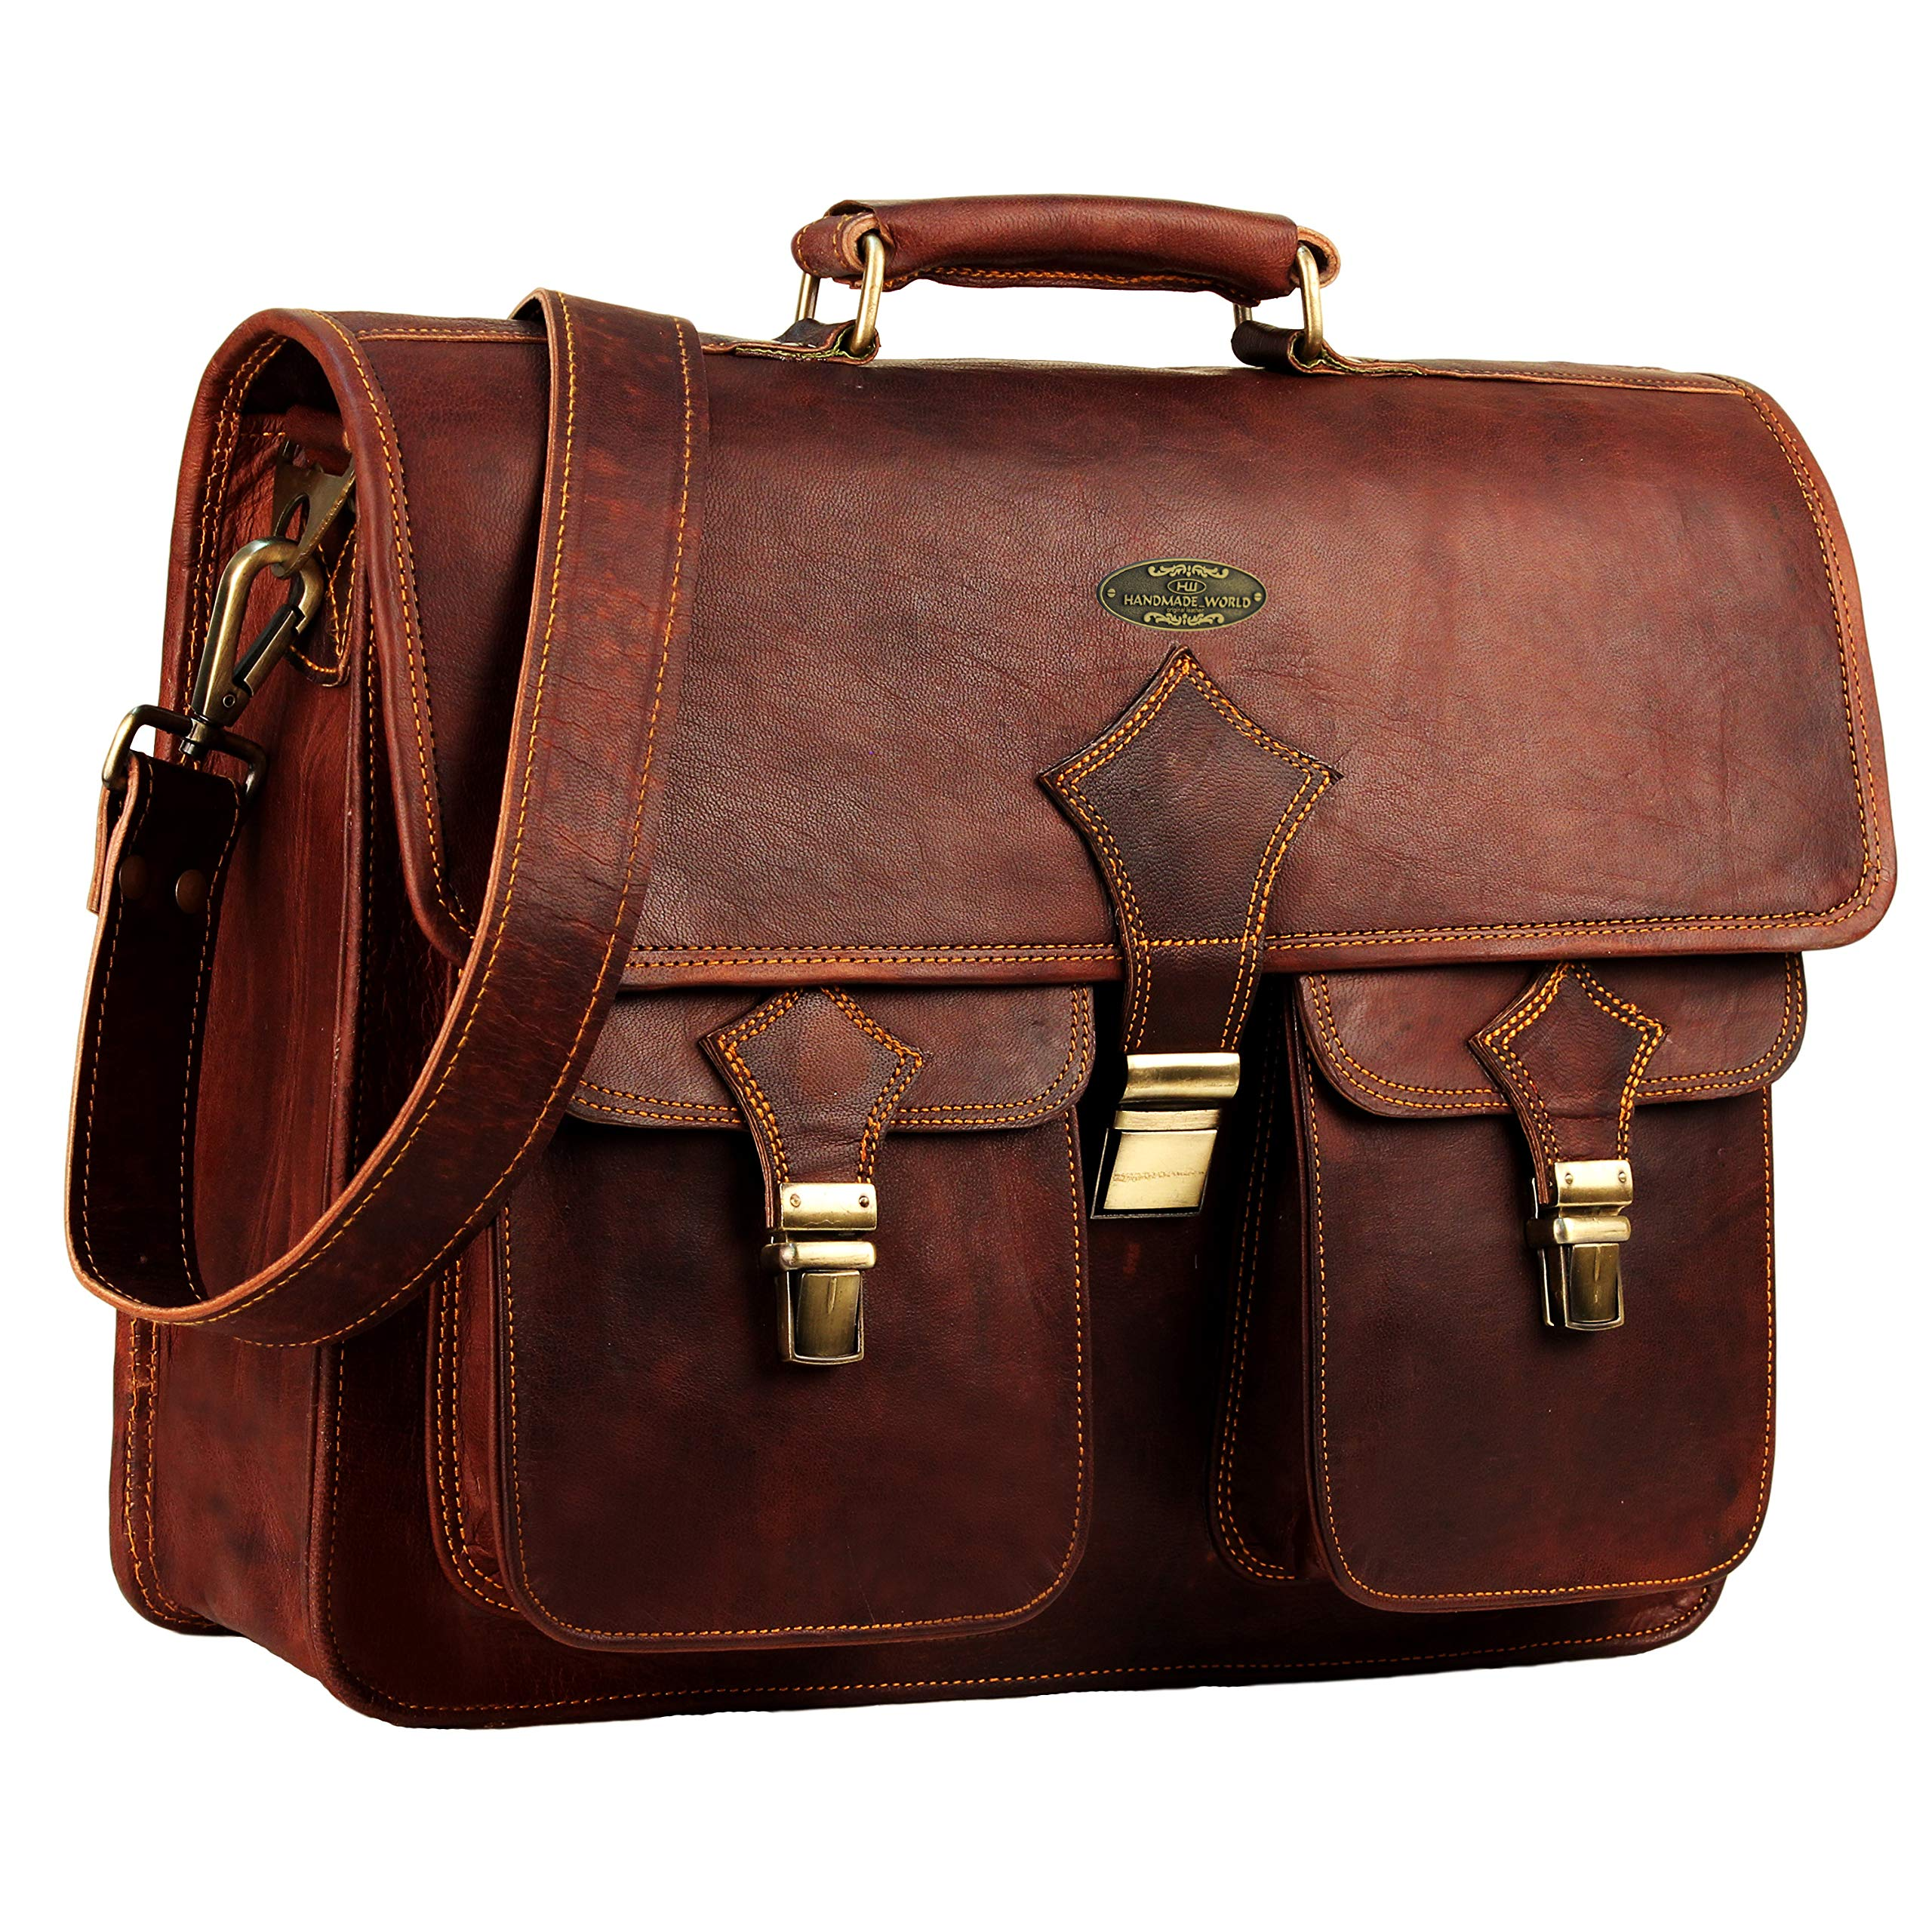 Vintage Leather Laptop Bags for Men Full Grain Large Leather Messenger bag for men 18 inches with rustic look Best leather briefcase by Hulsh by HULSH